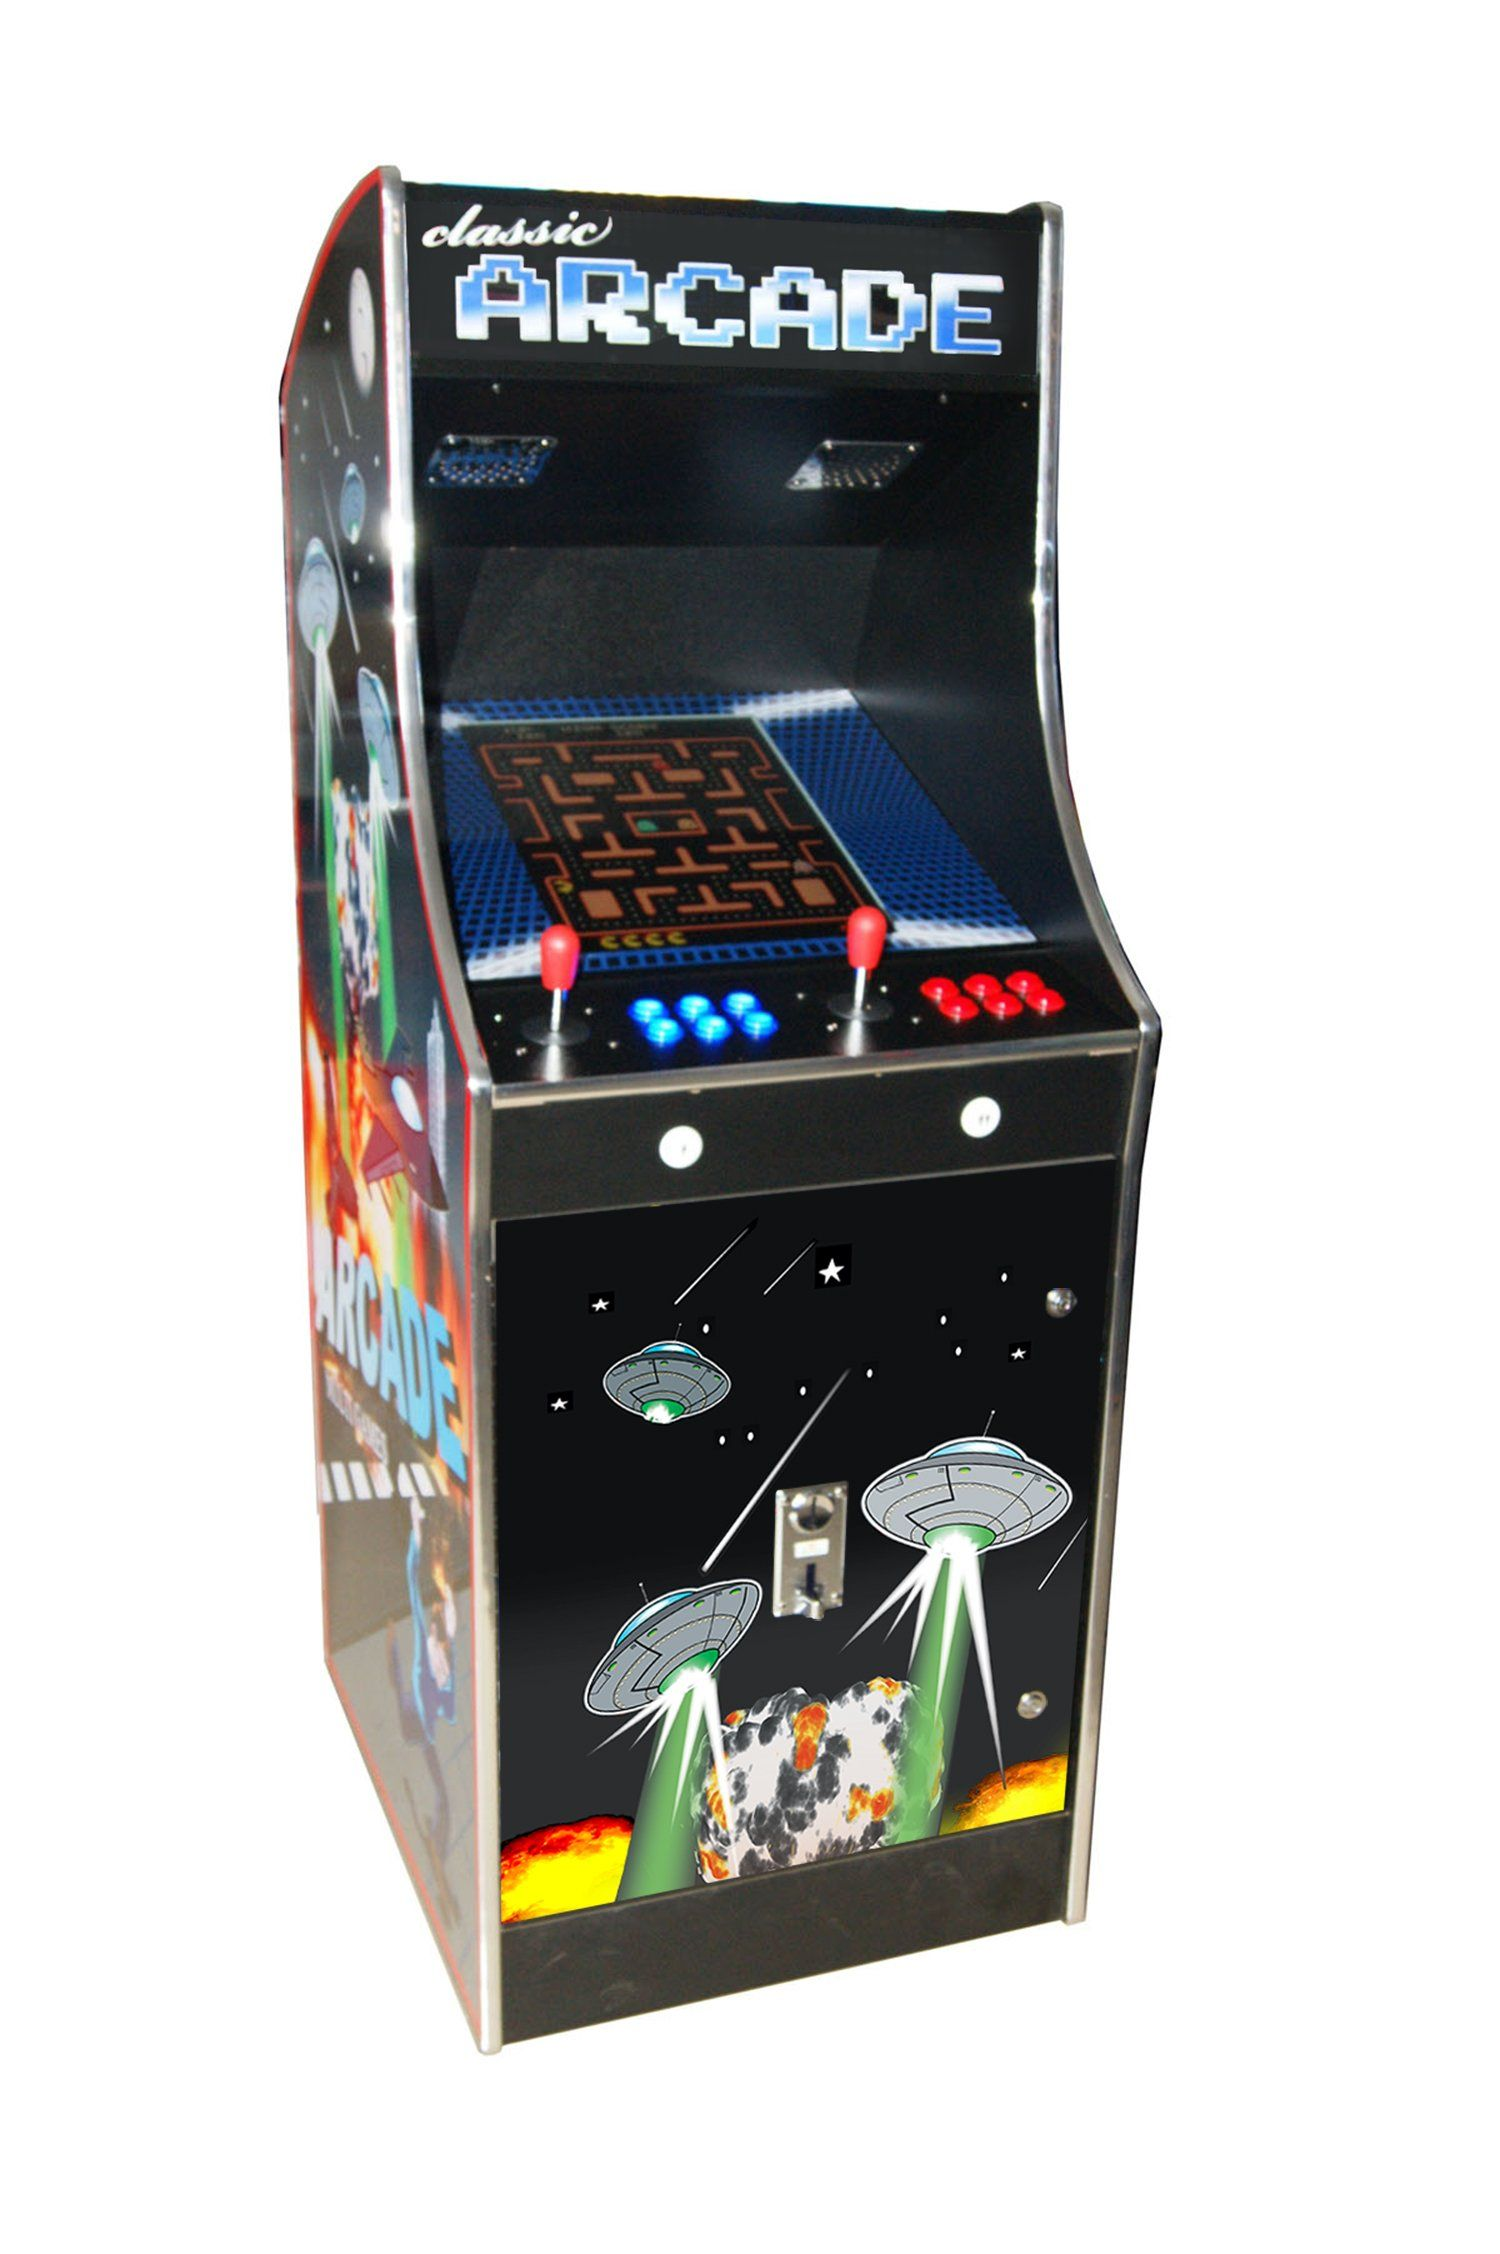 Cosmic II 60-in-1 Multi Game Arcade Machine | L's bedroom ...